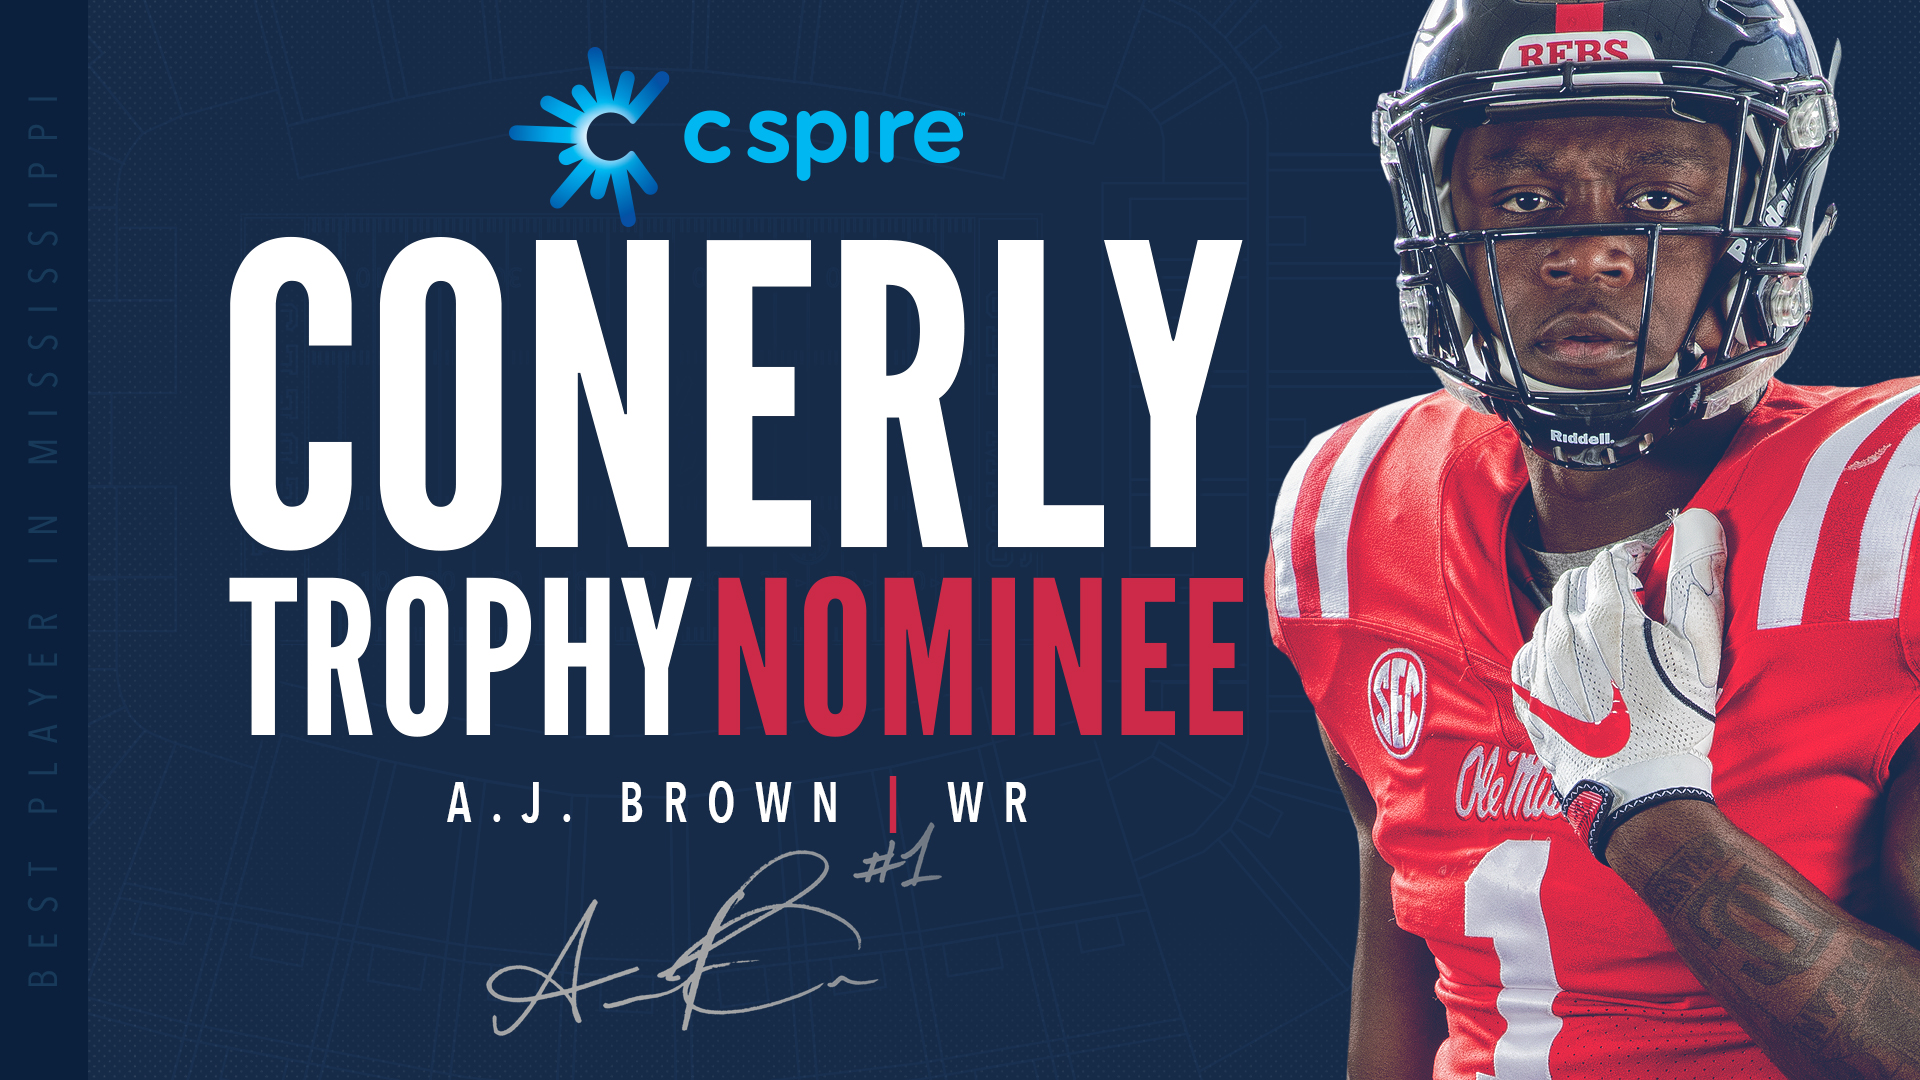 A J  Brown Nominated for 2018 C Spire Conerly Trophy - Ole Miss